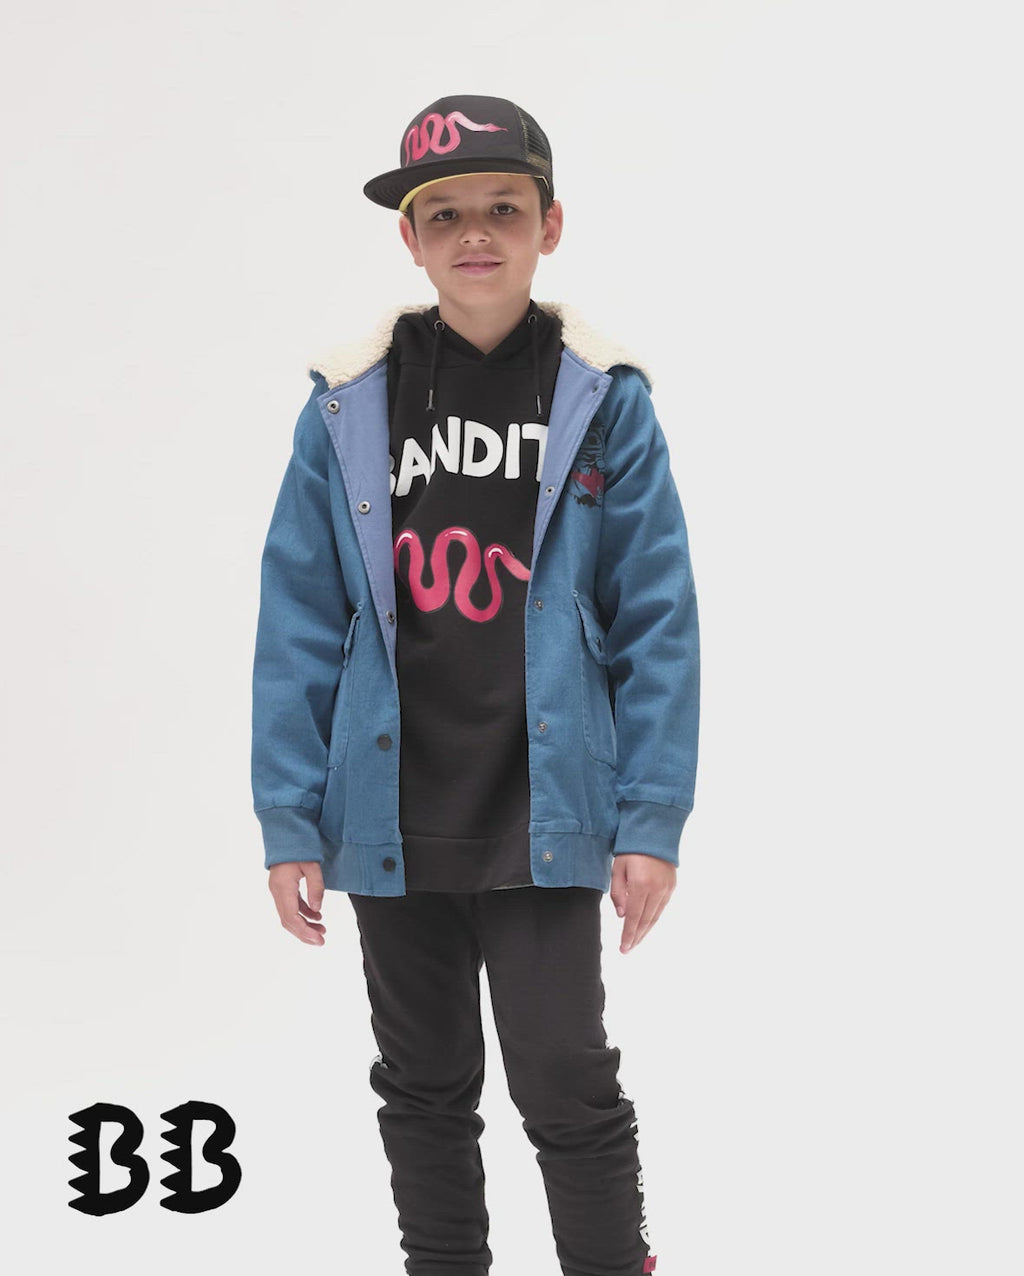 Bandits by Band of boys Lightning Tiger Bomber Jacket with faux fur lined hood shown on Model.